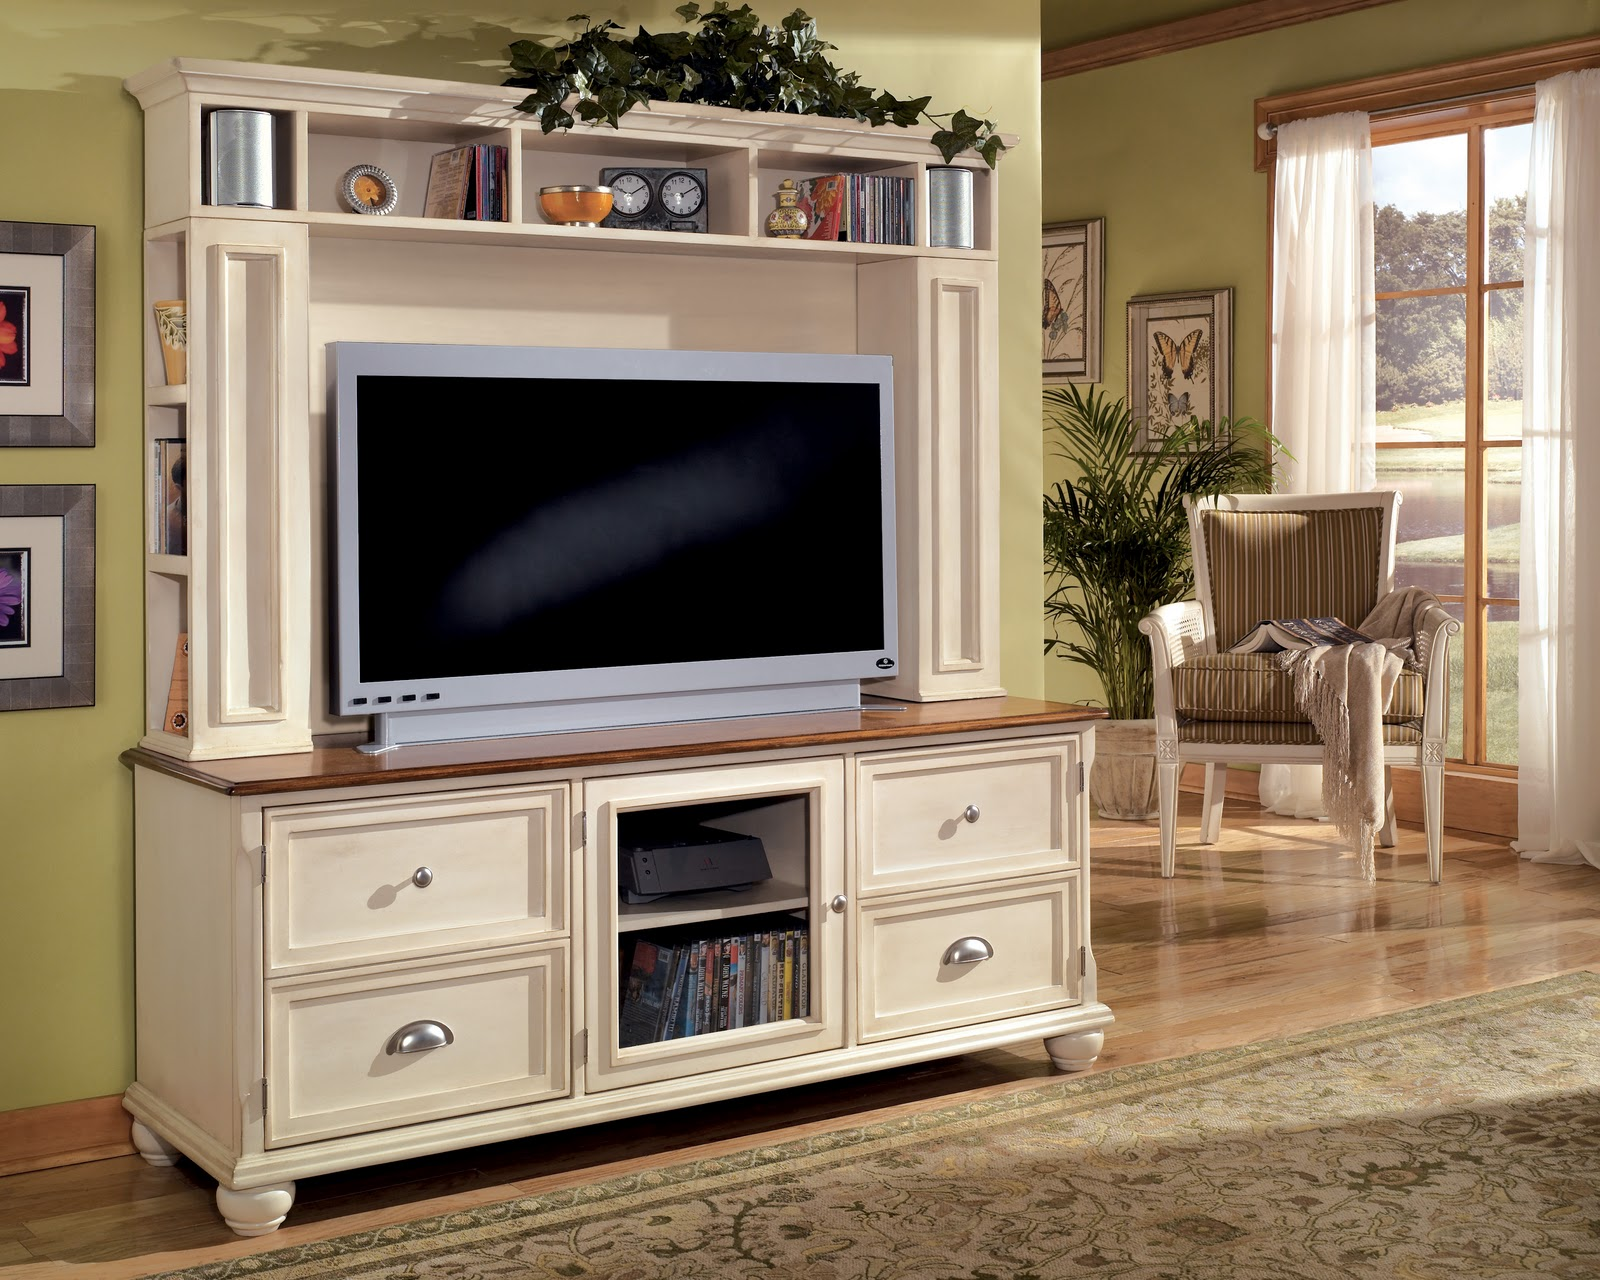 TV Stands Outlet: Matching Entertainment Furniture with ...